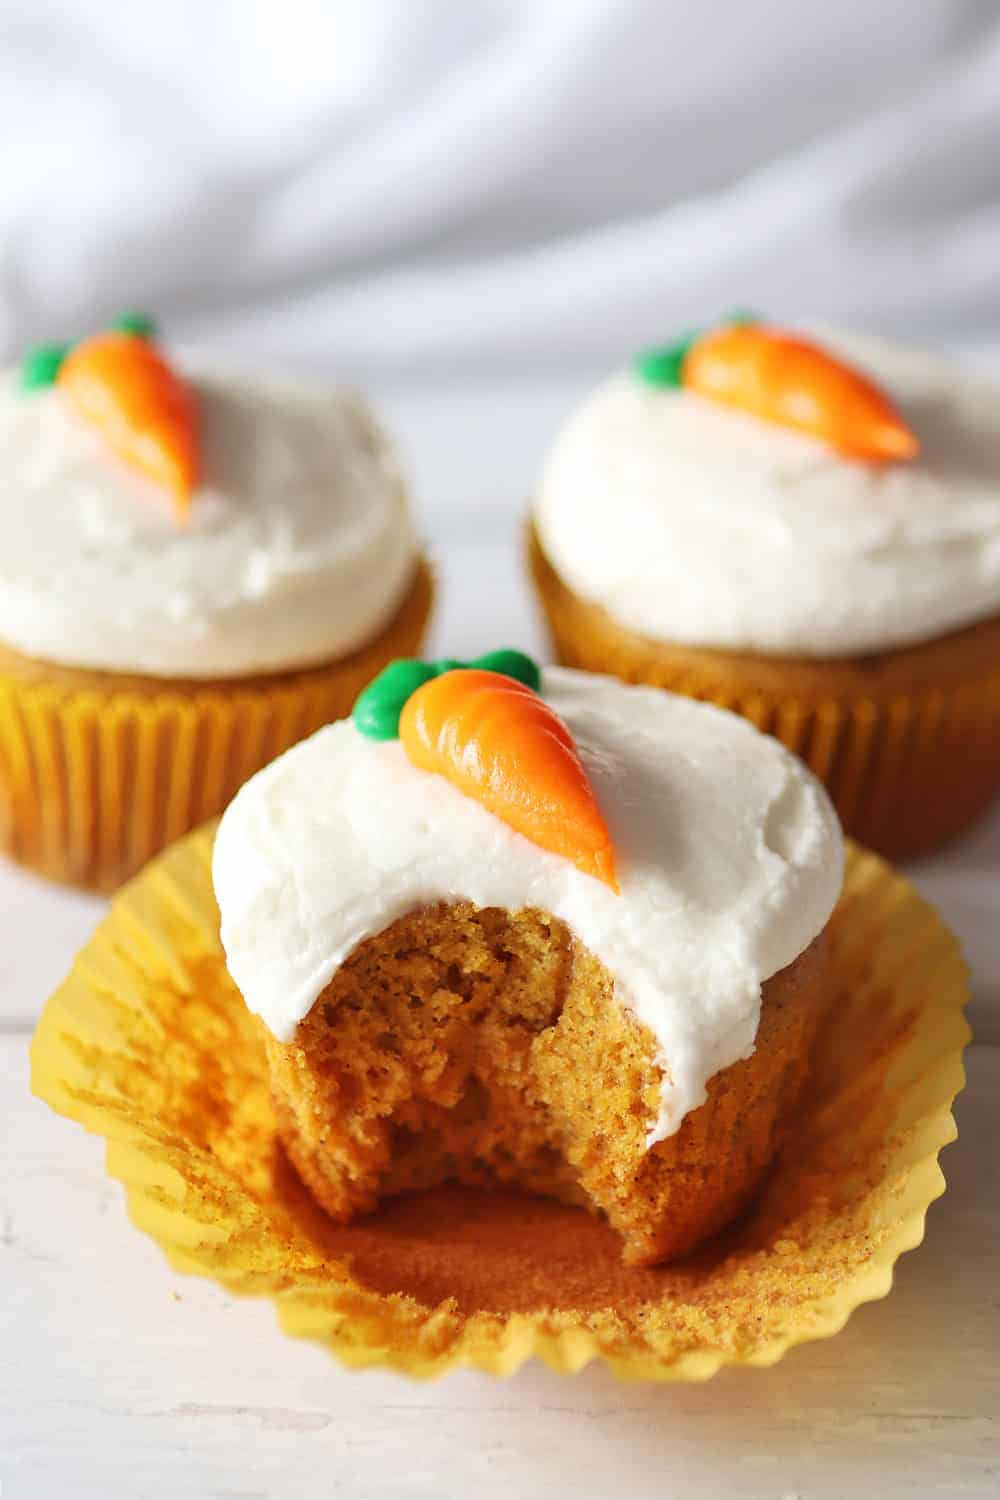 Carrot cake cupcakes topped with icing in the shape of a carrot.